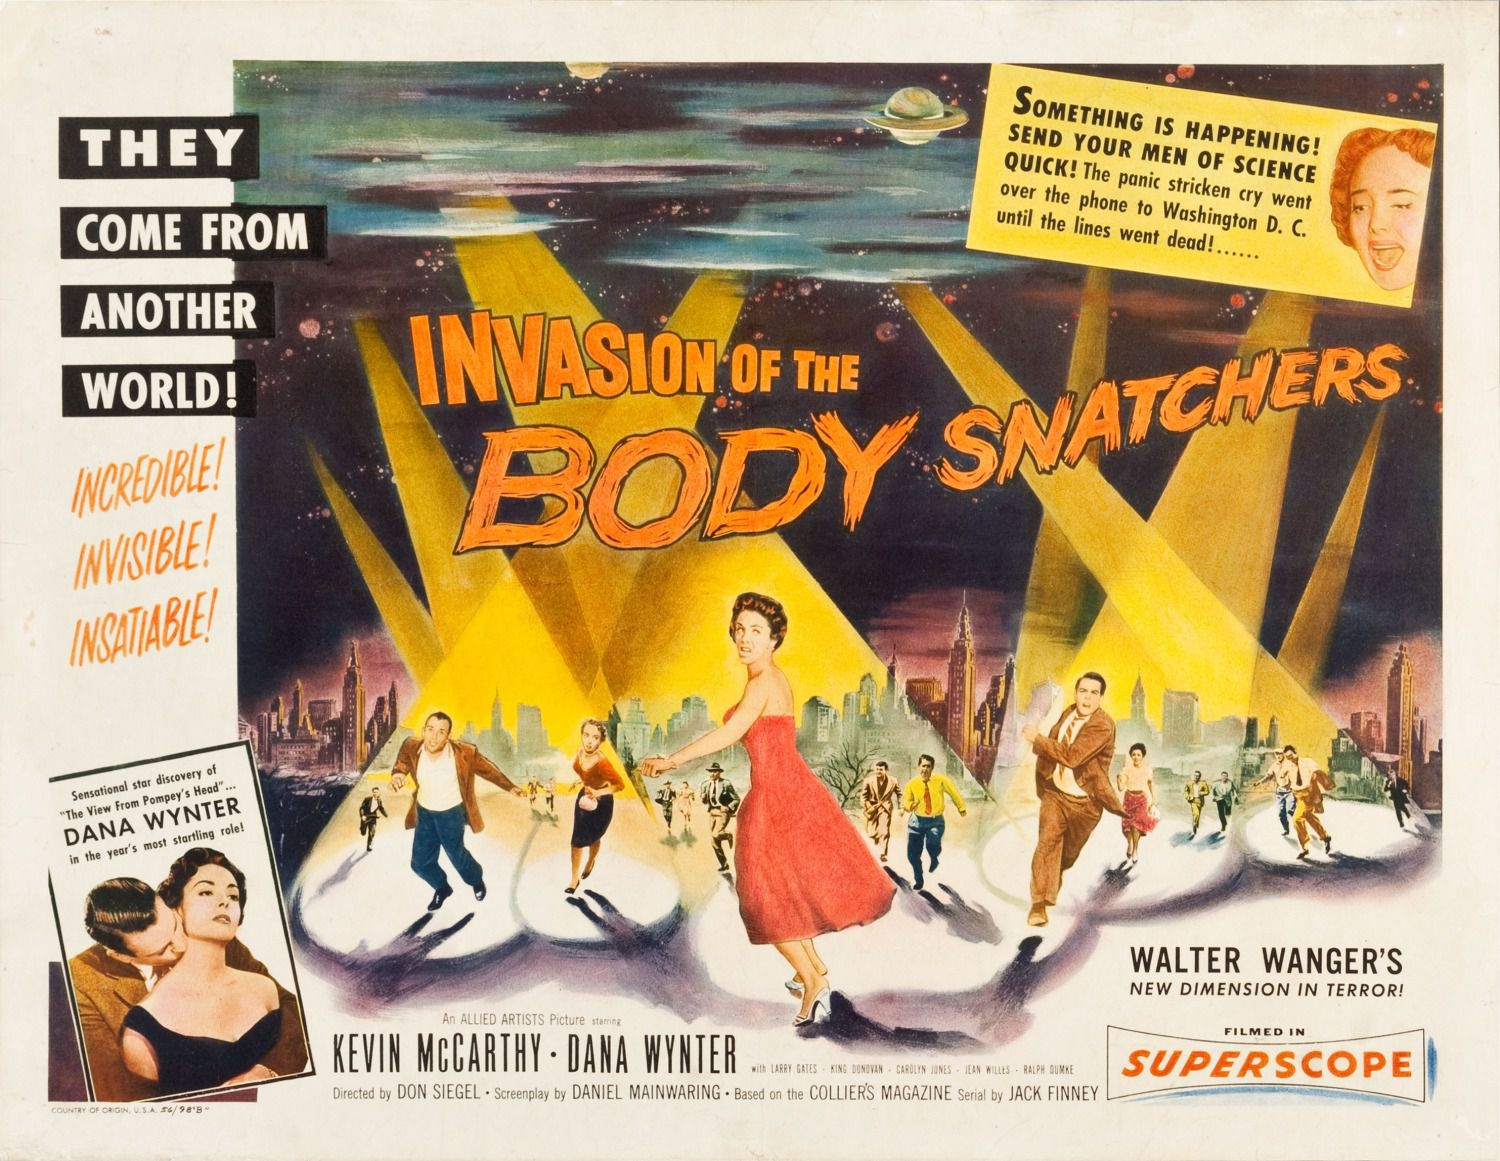 Invasion of the Body snatchers - Invasione Ultracorpi - 1956 - They come from another World - Allied Artists Picture starring Kevin McCarthy and Dana Wynter - Larry Gates - King Donovan - Carolyn Jones - Jean Willes - Ralph Sumke - Directed by Don Siegel - classic scifi science fiction movie film poster - fantascienza cult